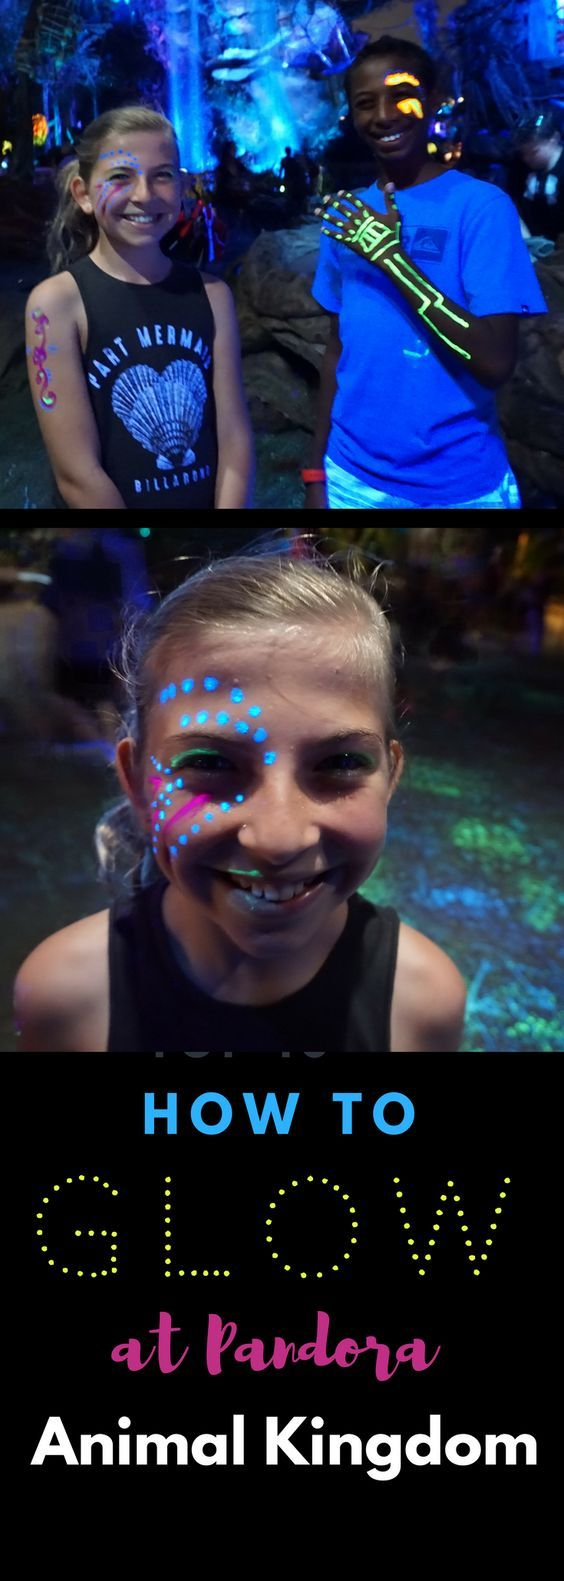 We visited Pandora in Animal Kingdom, but this time we were prepared to make ourselves glow in Pandora. #glow #Pandora